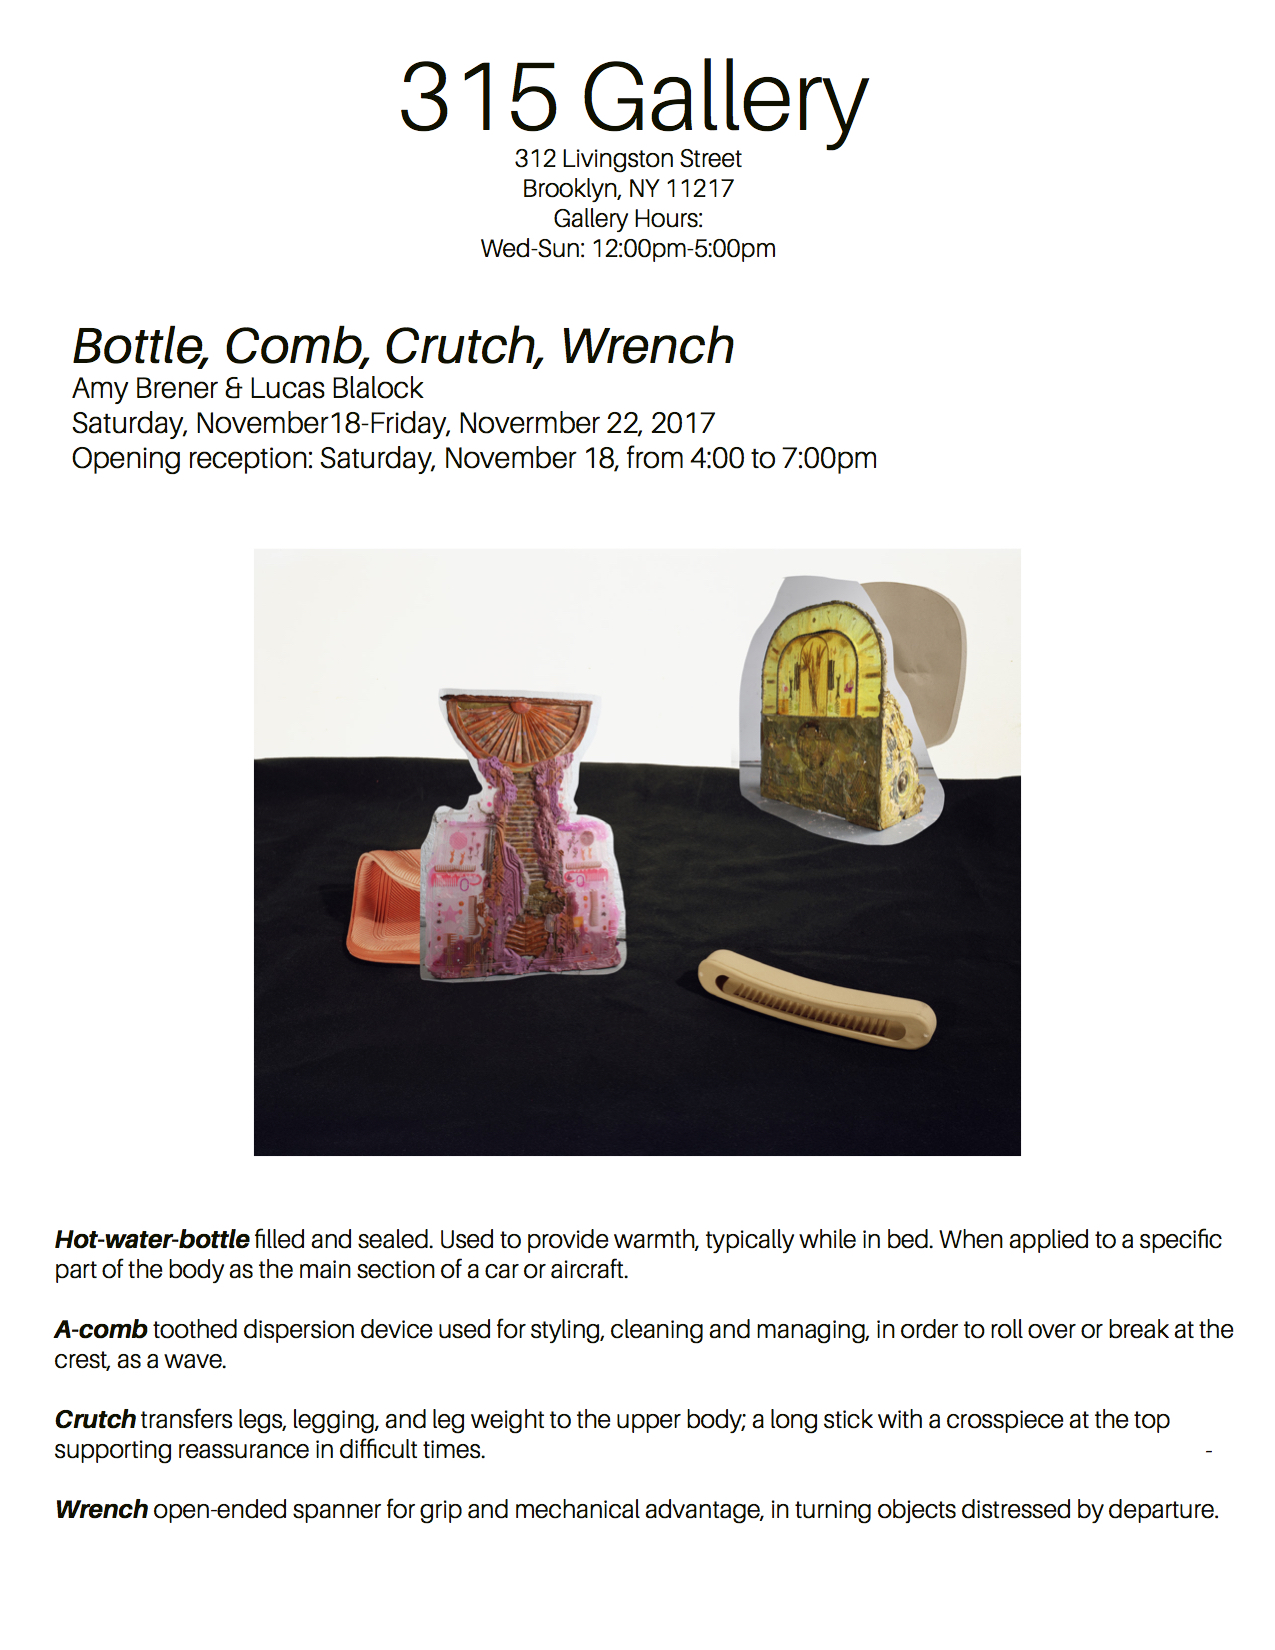 BottleCombCrutchWrench Press release2.jpg